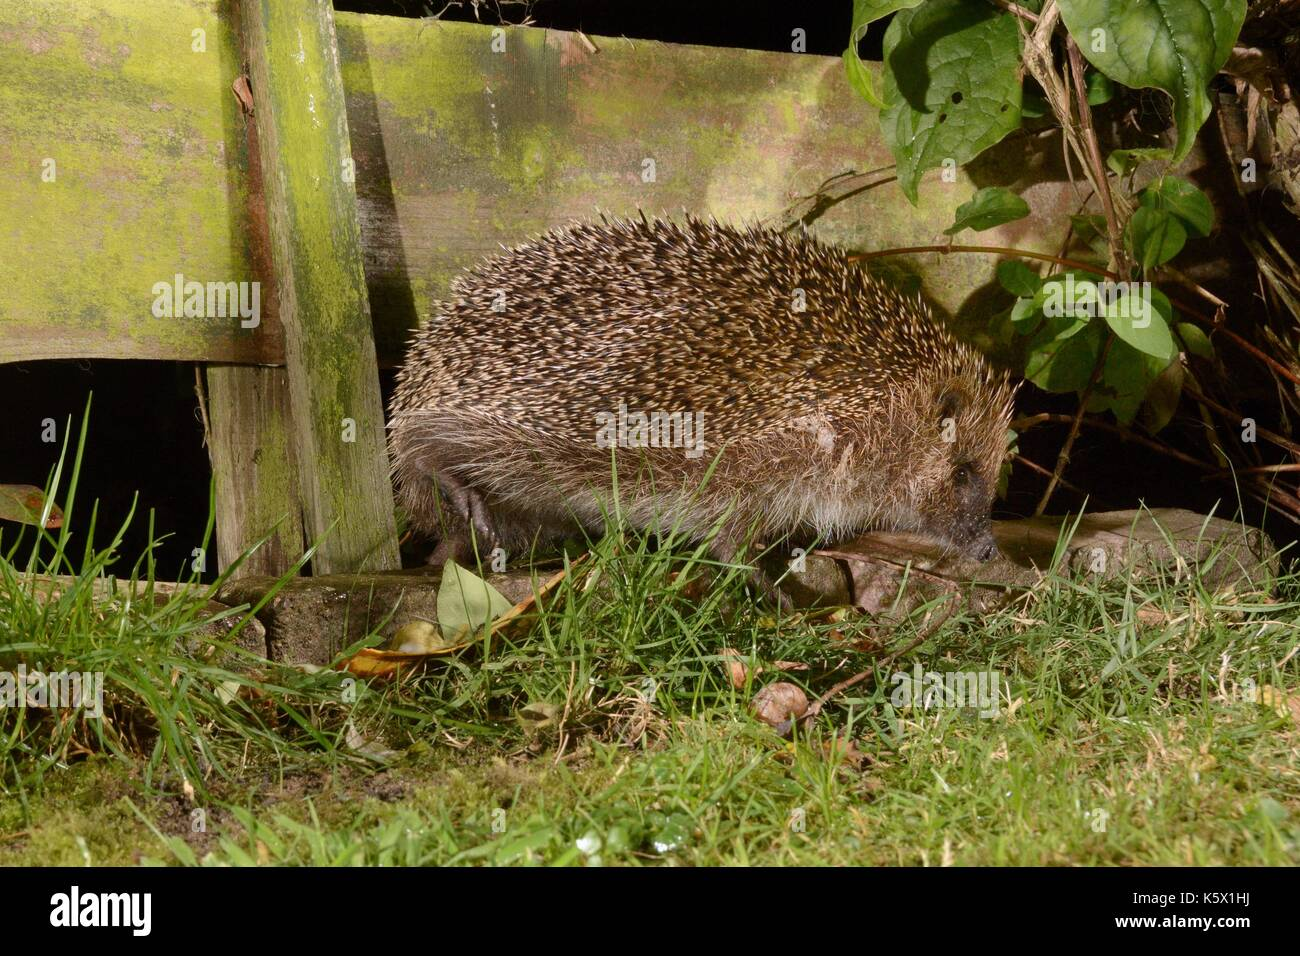 European hedgehog (Erinaceus europaeus) entering a suburban garden from the next door garden by squeezing through Stock Photo